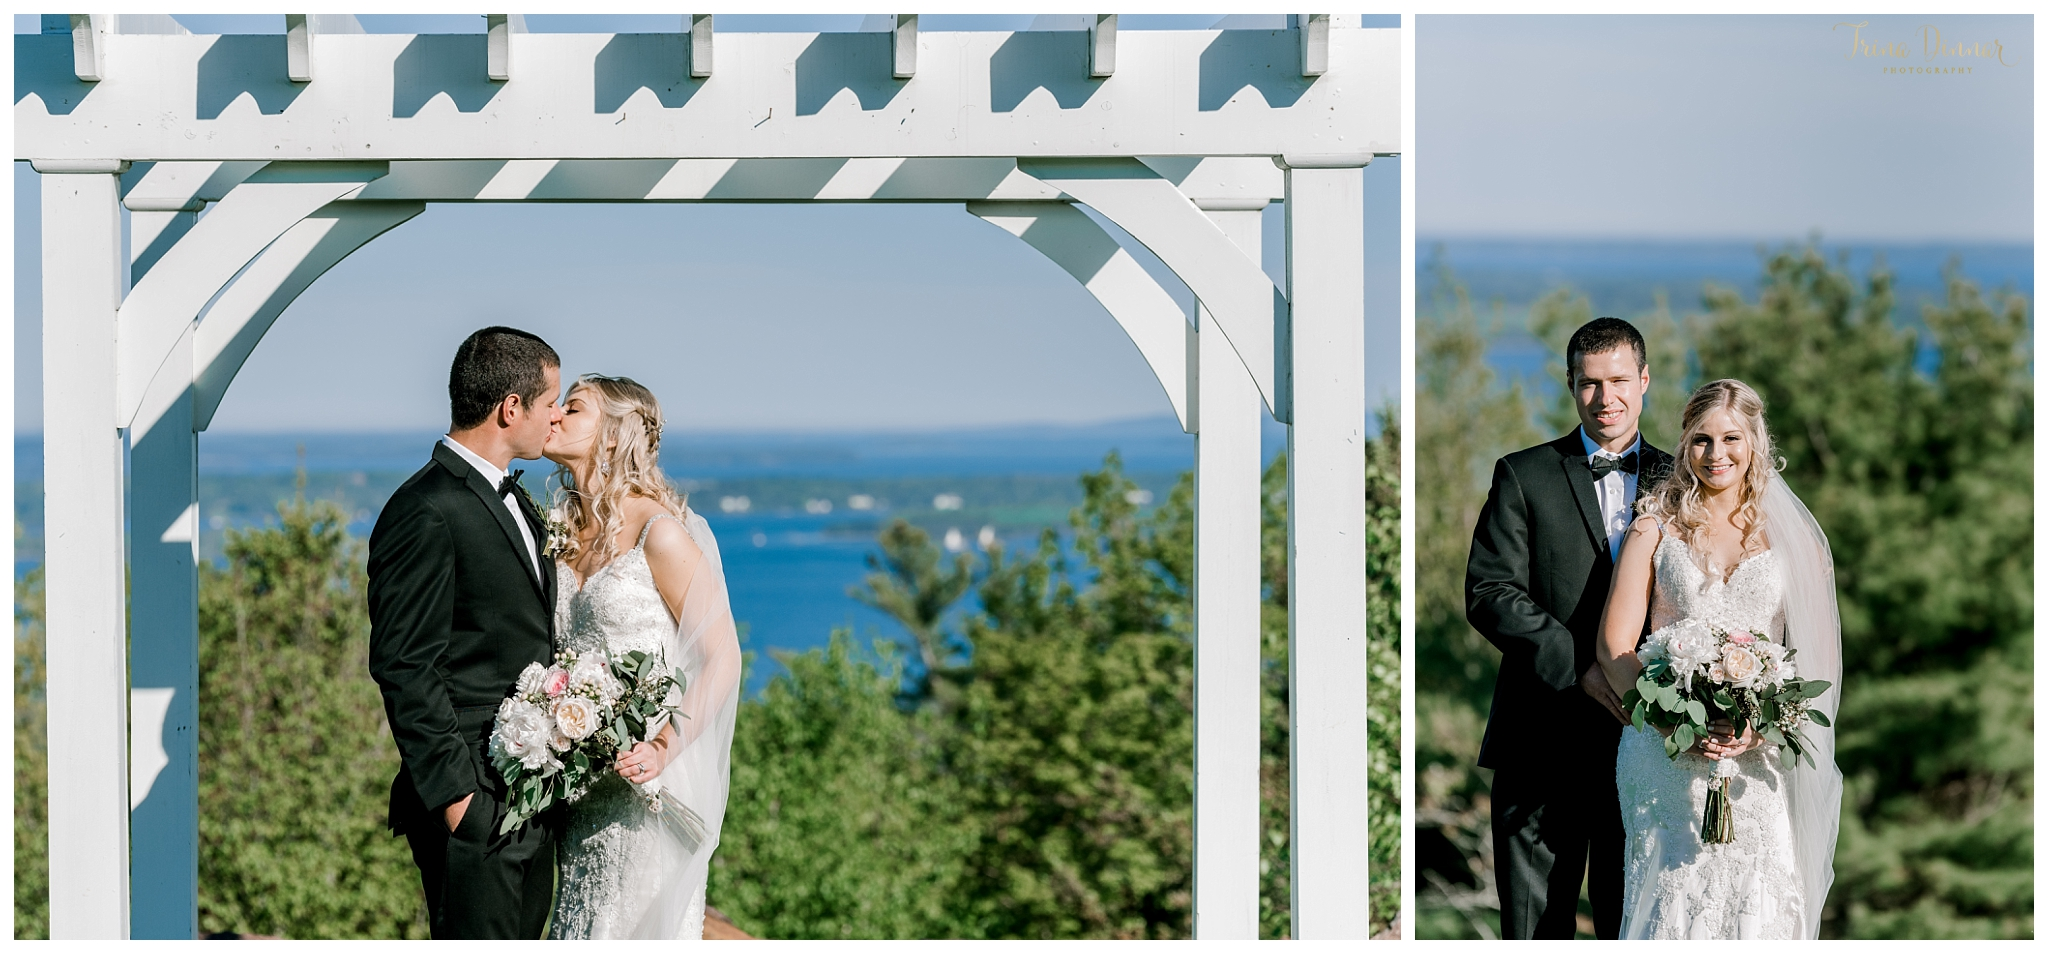 Wedding Portrait Photography at Knight Pond in Northport, ME